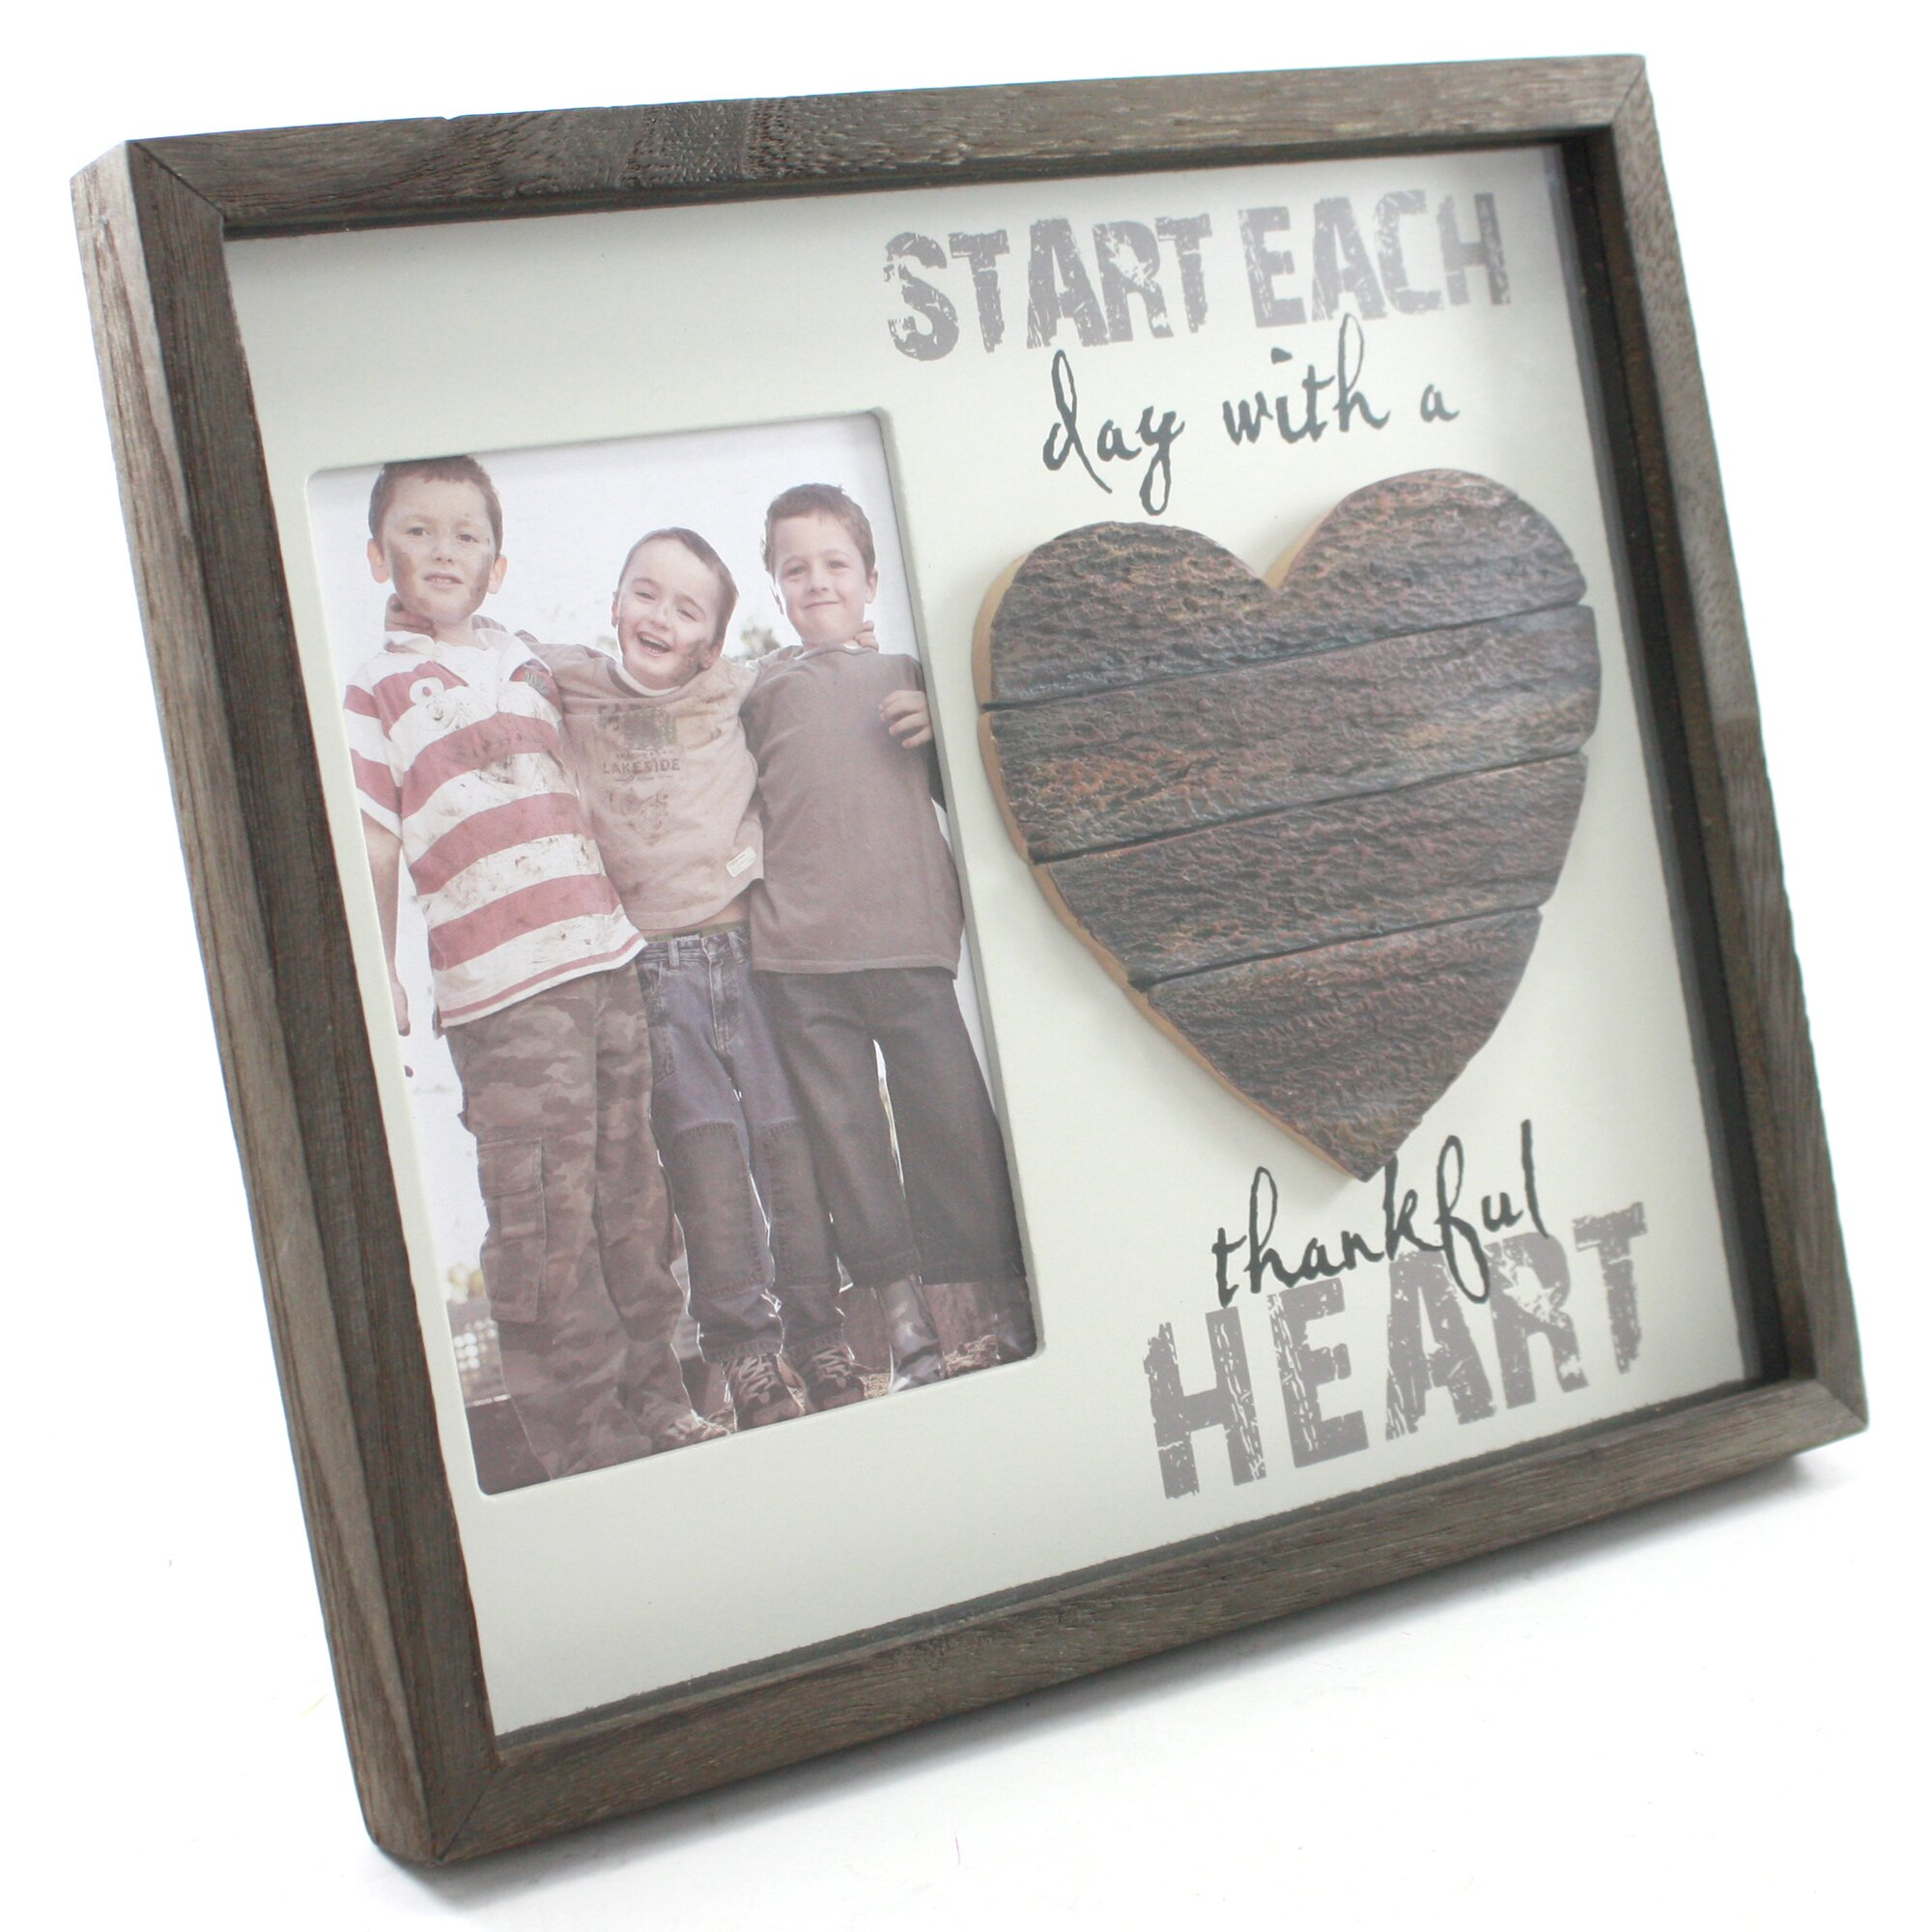 Https Www Wayfair Com Fetco Home Decor Cleary Thankful Heart Picture Frame Fhk2262 Html